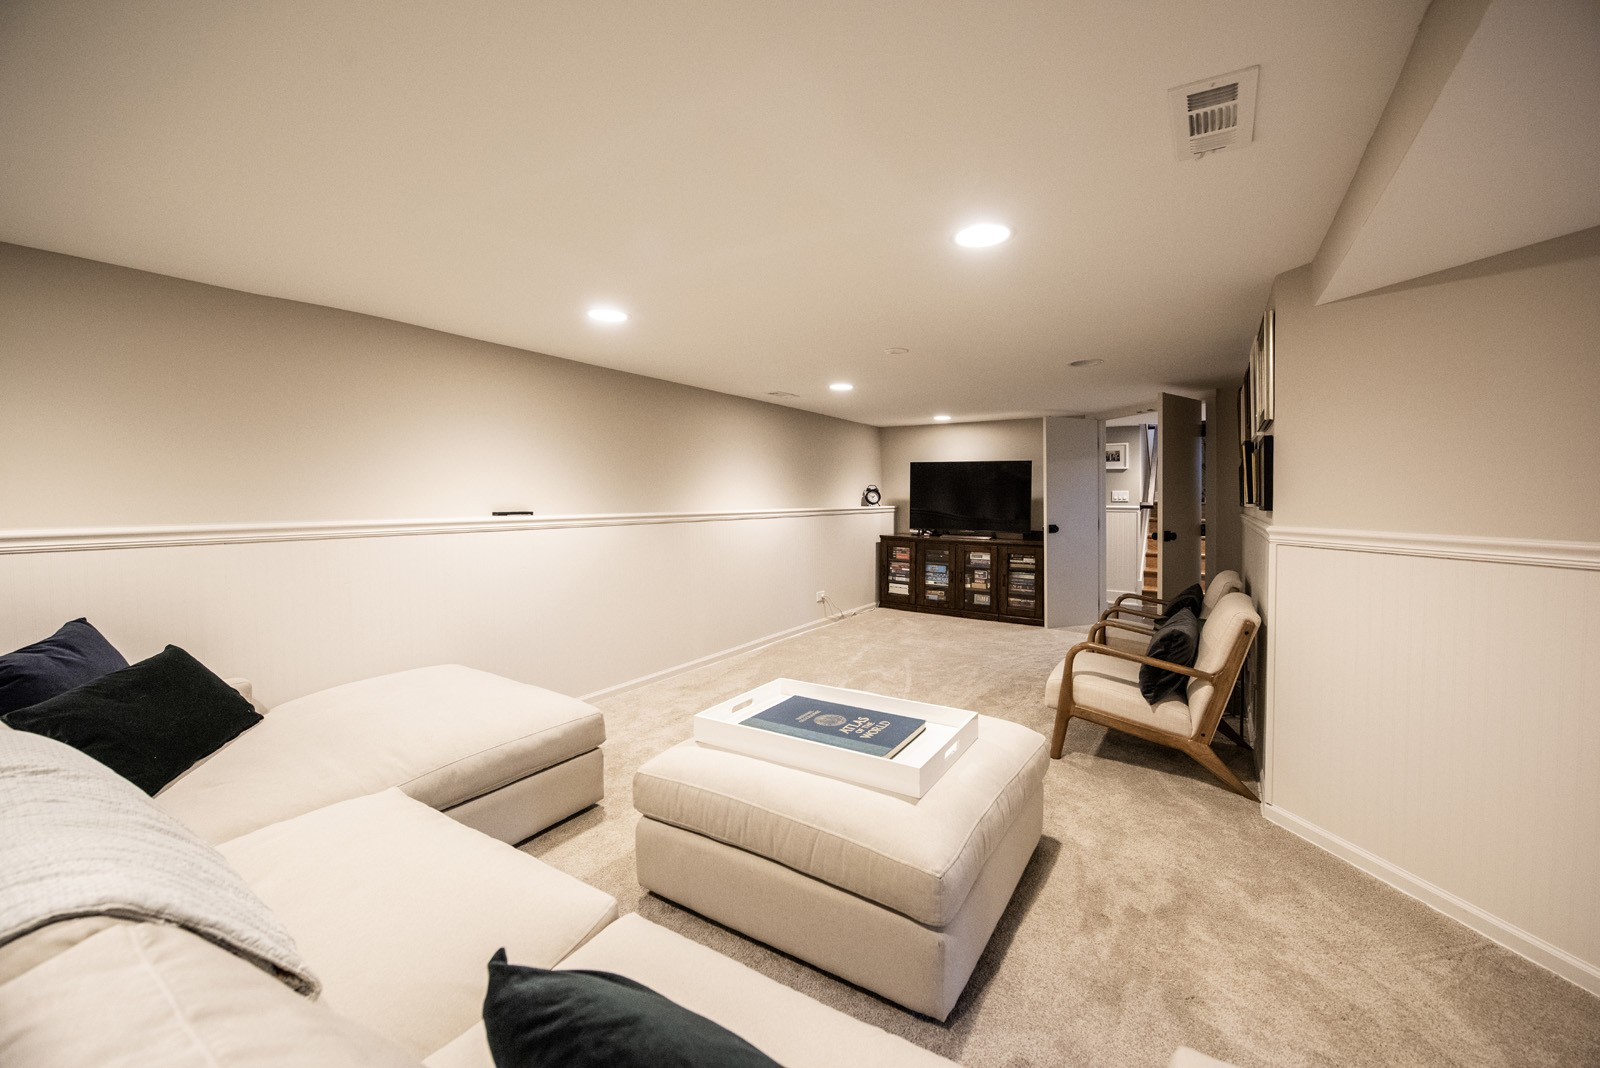 Media Room with white walls a cream sectional and ottoman facing a media stand with a tv on top